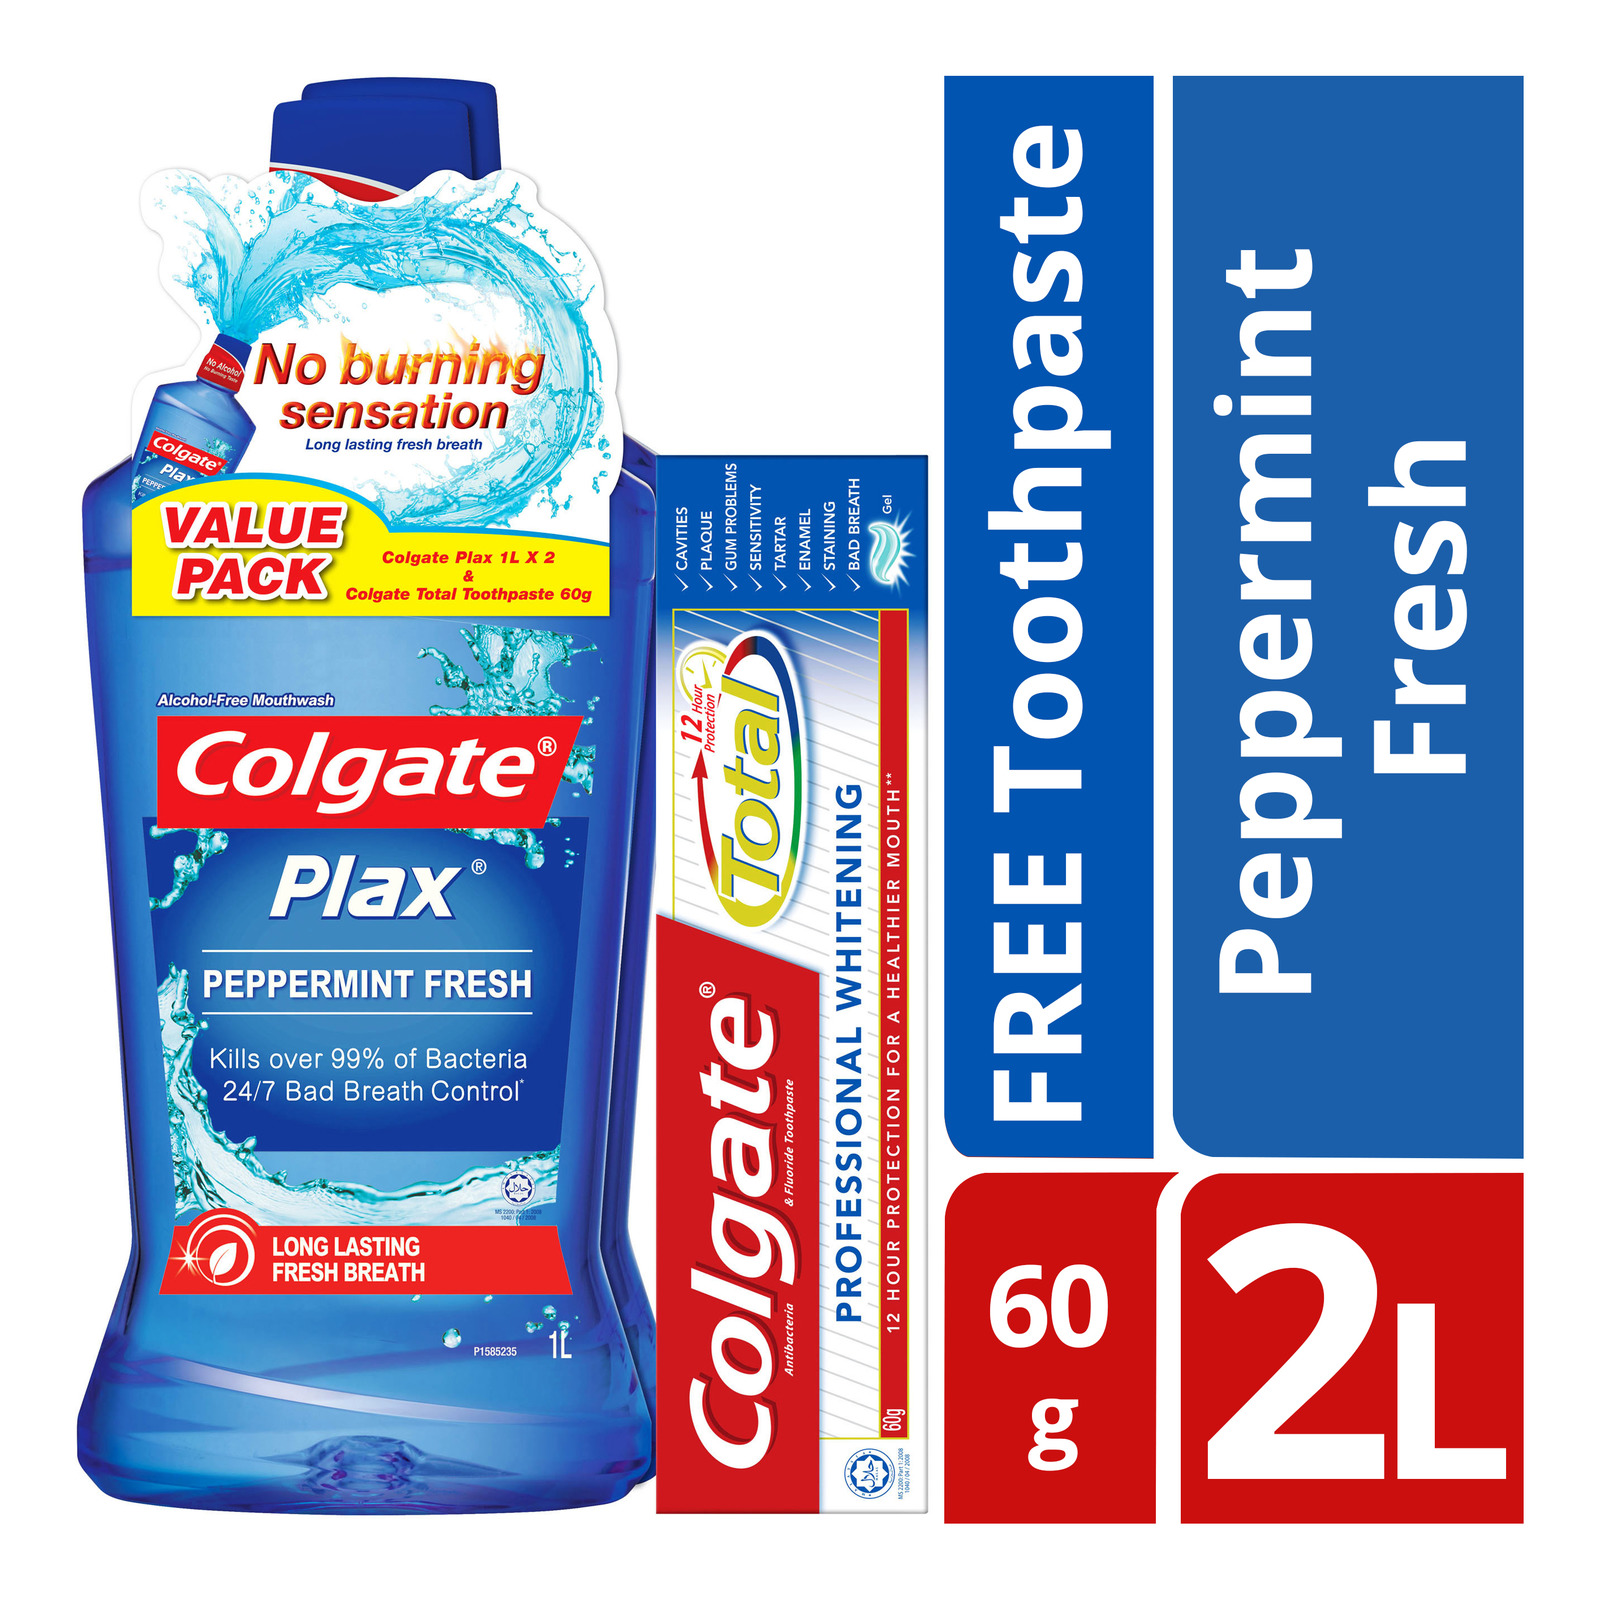 Colgate Plax Mouthwash - Peppermint Fresh + Free 60gToothpaste